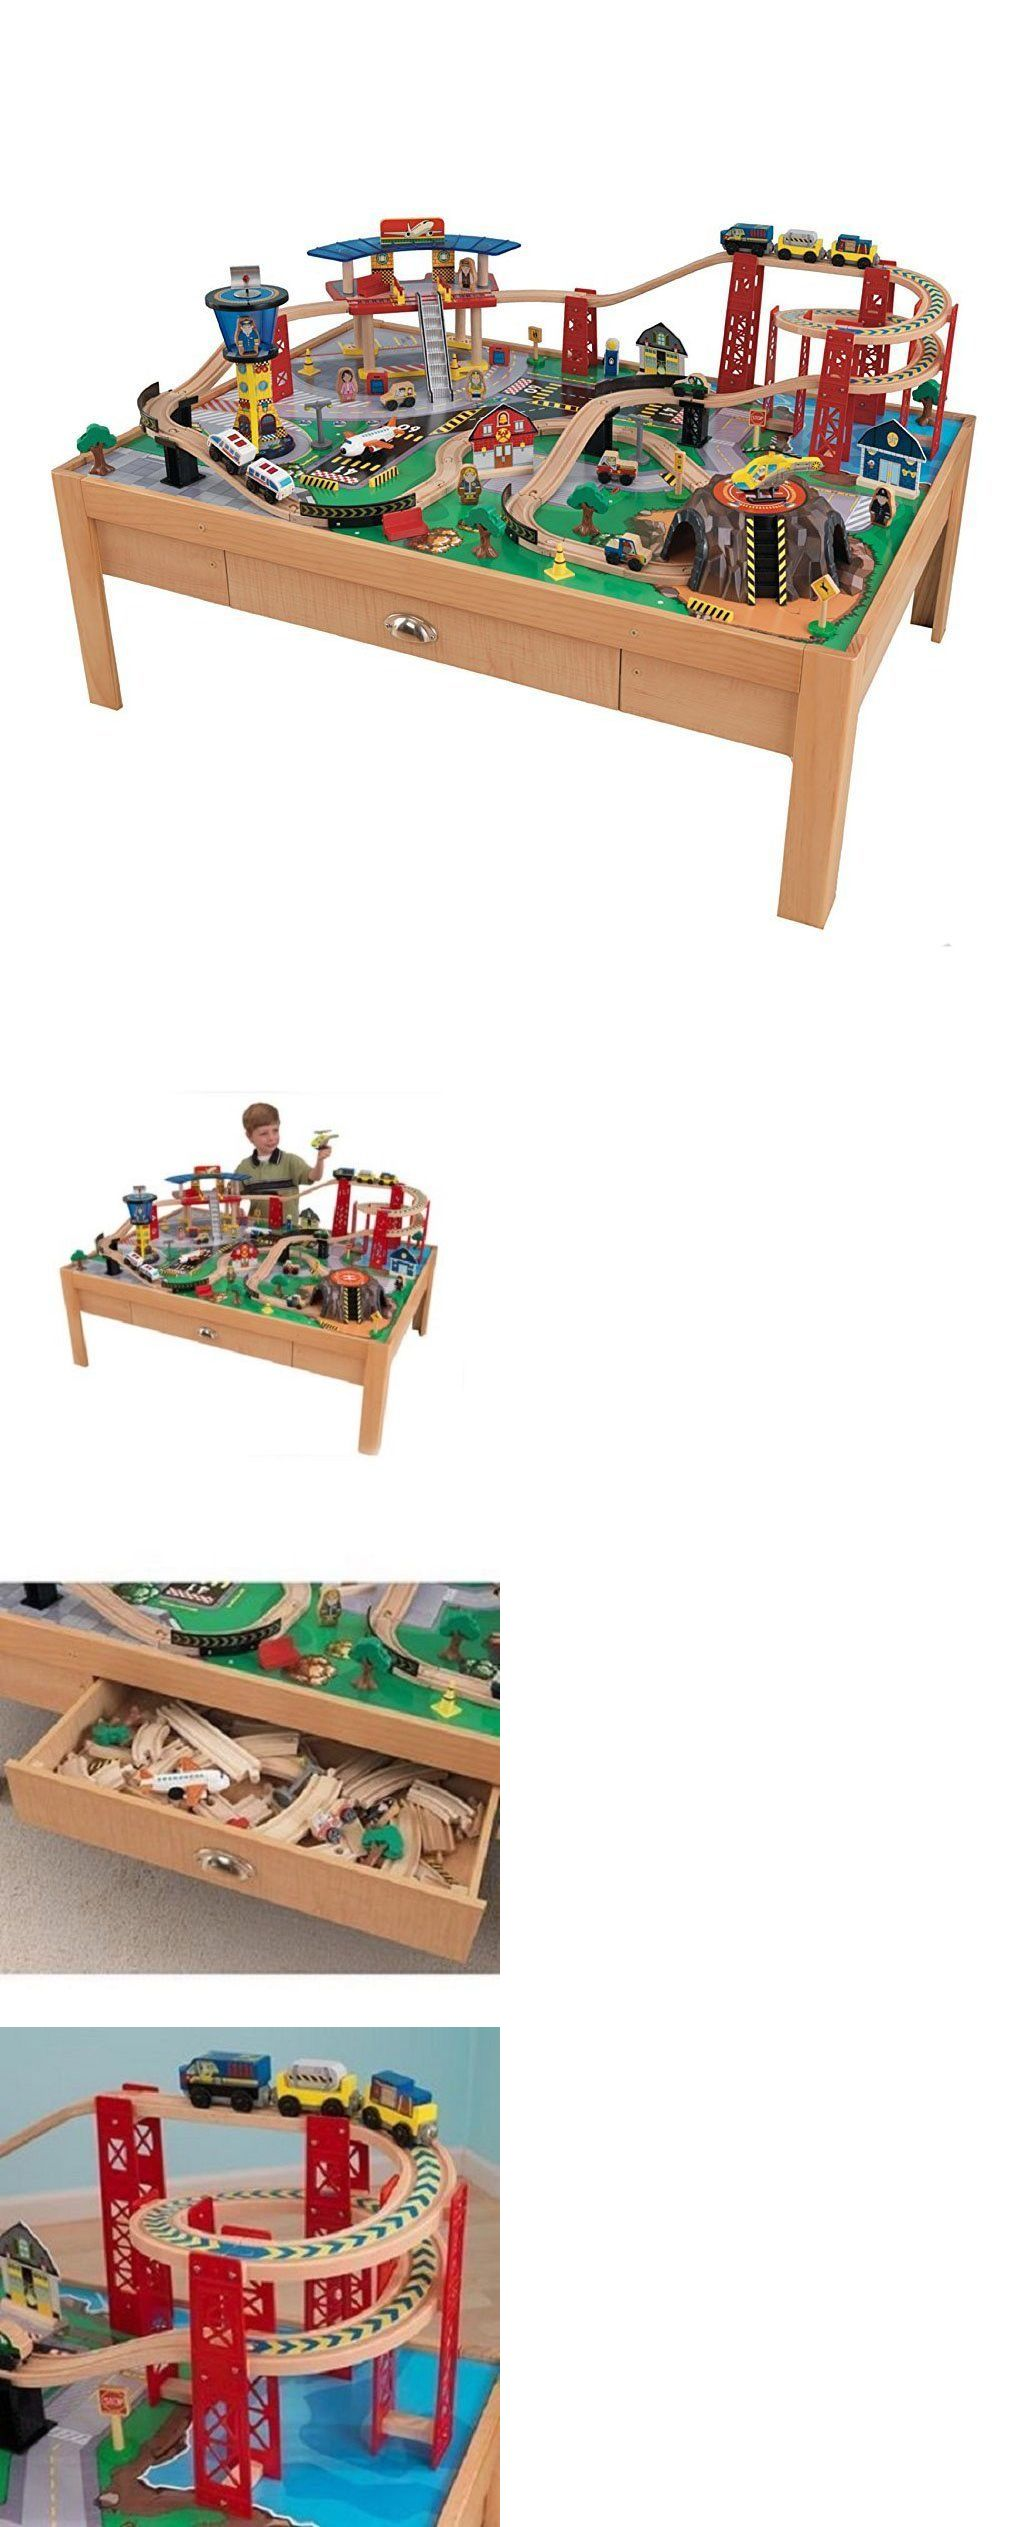 Brio Compatible 16517: Kidkraft Airport Express Wood Train Table Toy Set  100Pc Busy City Play